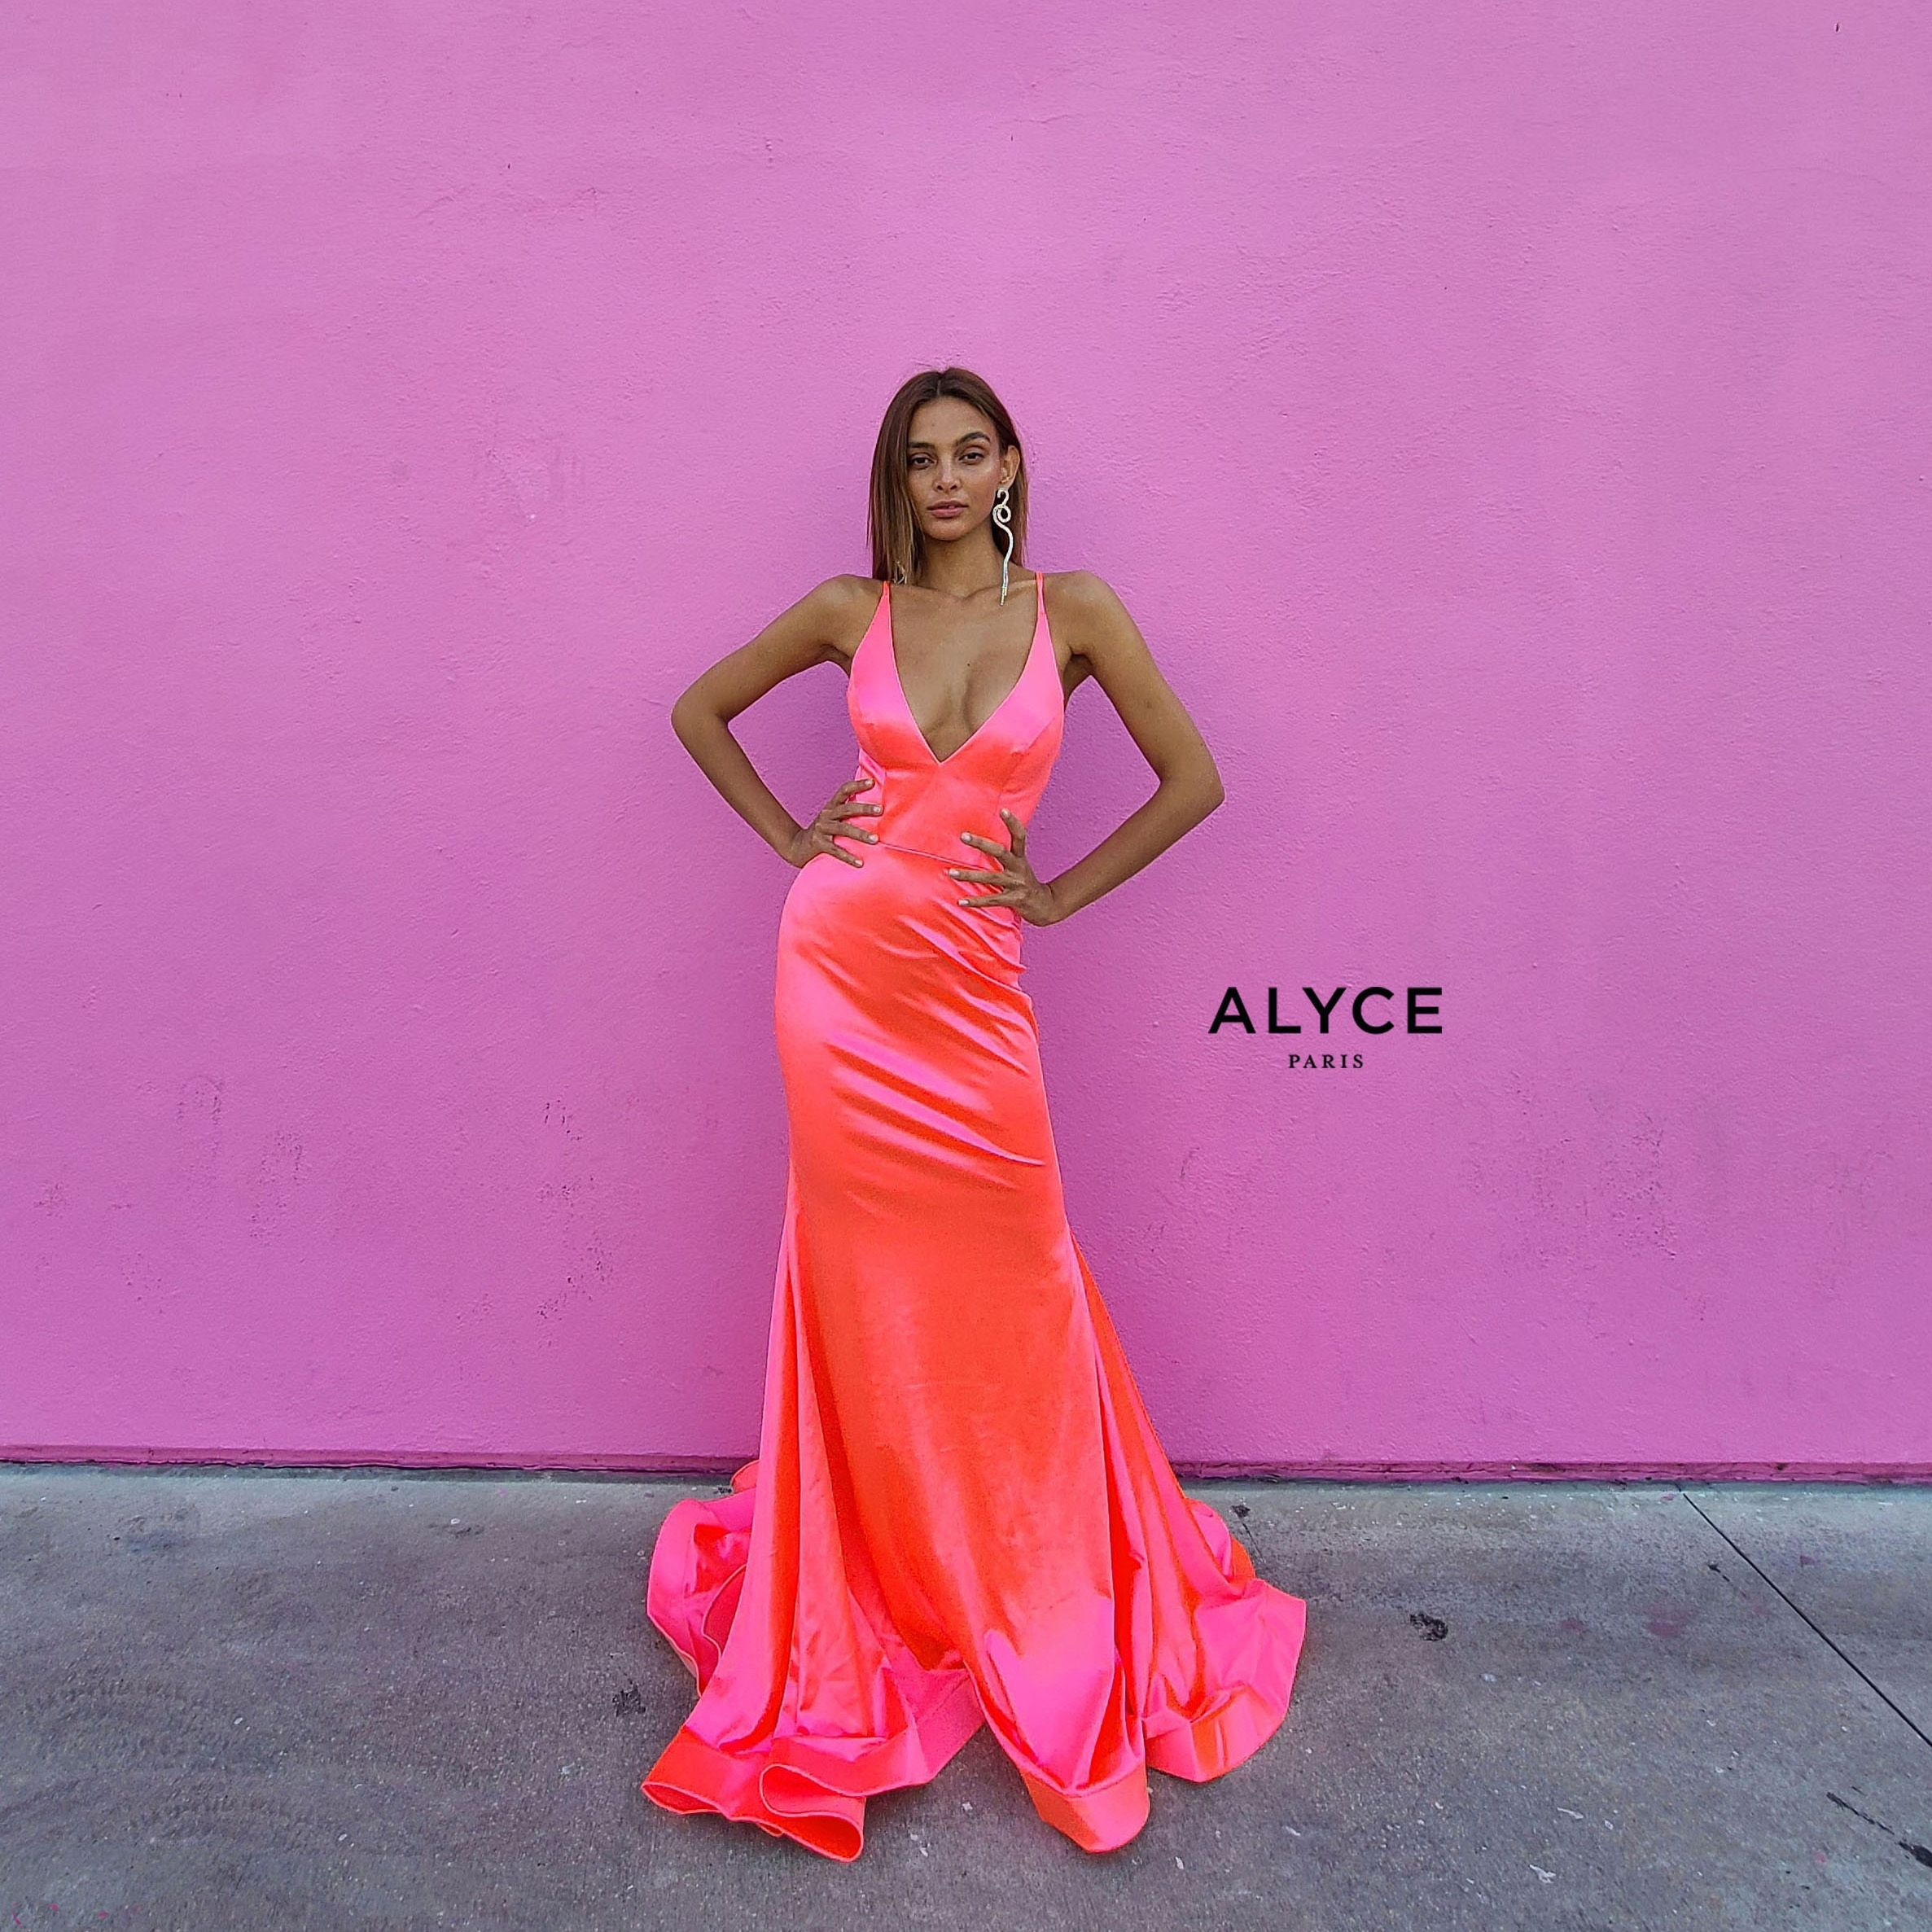 Alyce Paris 1625 Stretch Satin Prom Dress 2021 Prom Dresses Evening Gowns Formal Dresses In 2021 Formal Dresses Satin Prom Dress 2021 Prom Dresses [ 2373 x 2373 Pixel ]